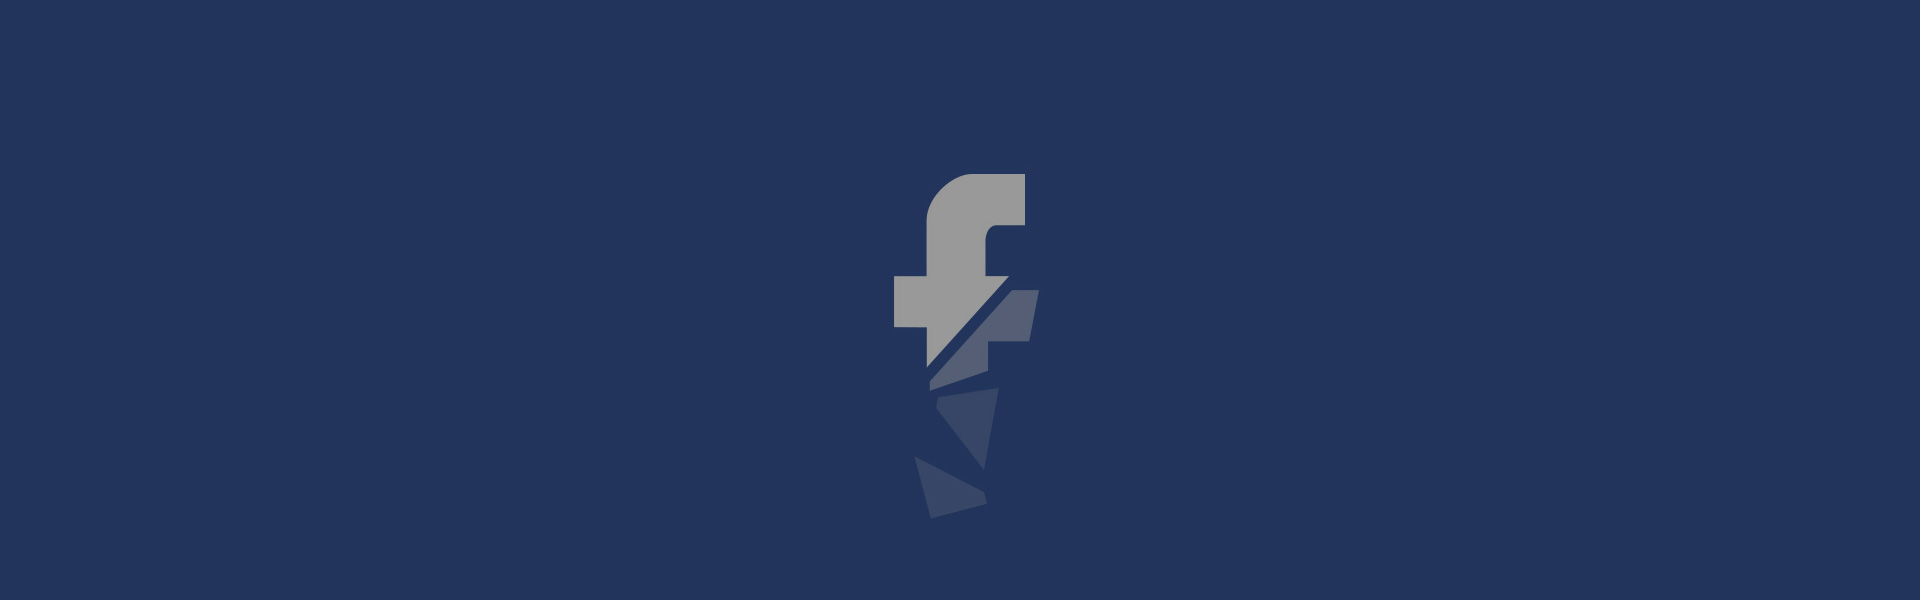 Is Facebook Dying?